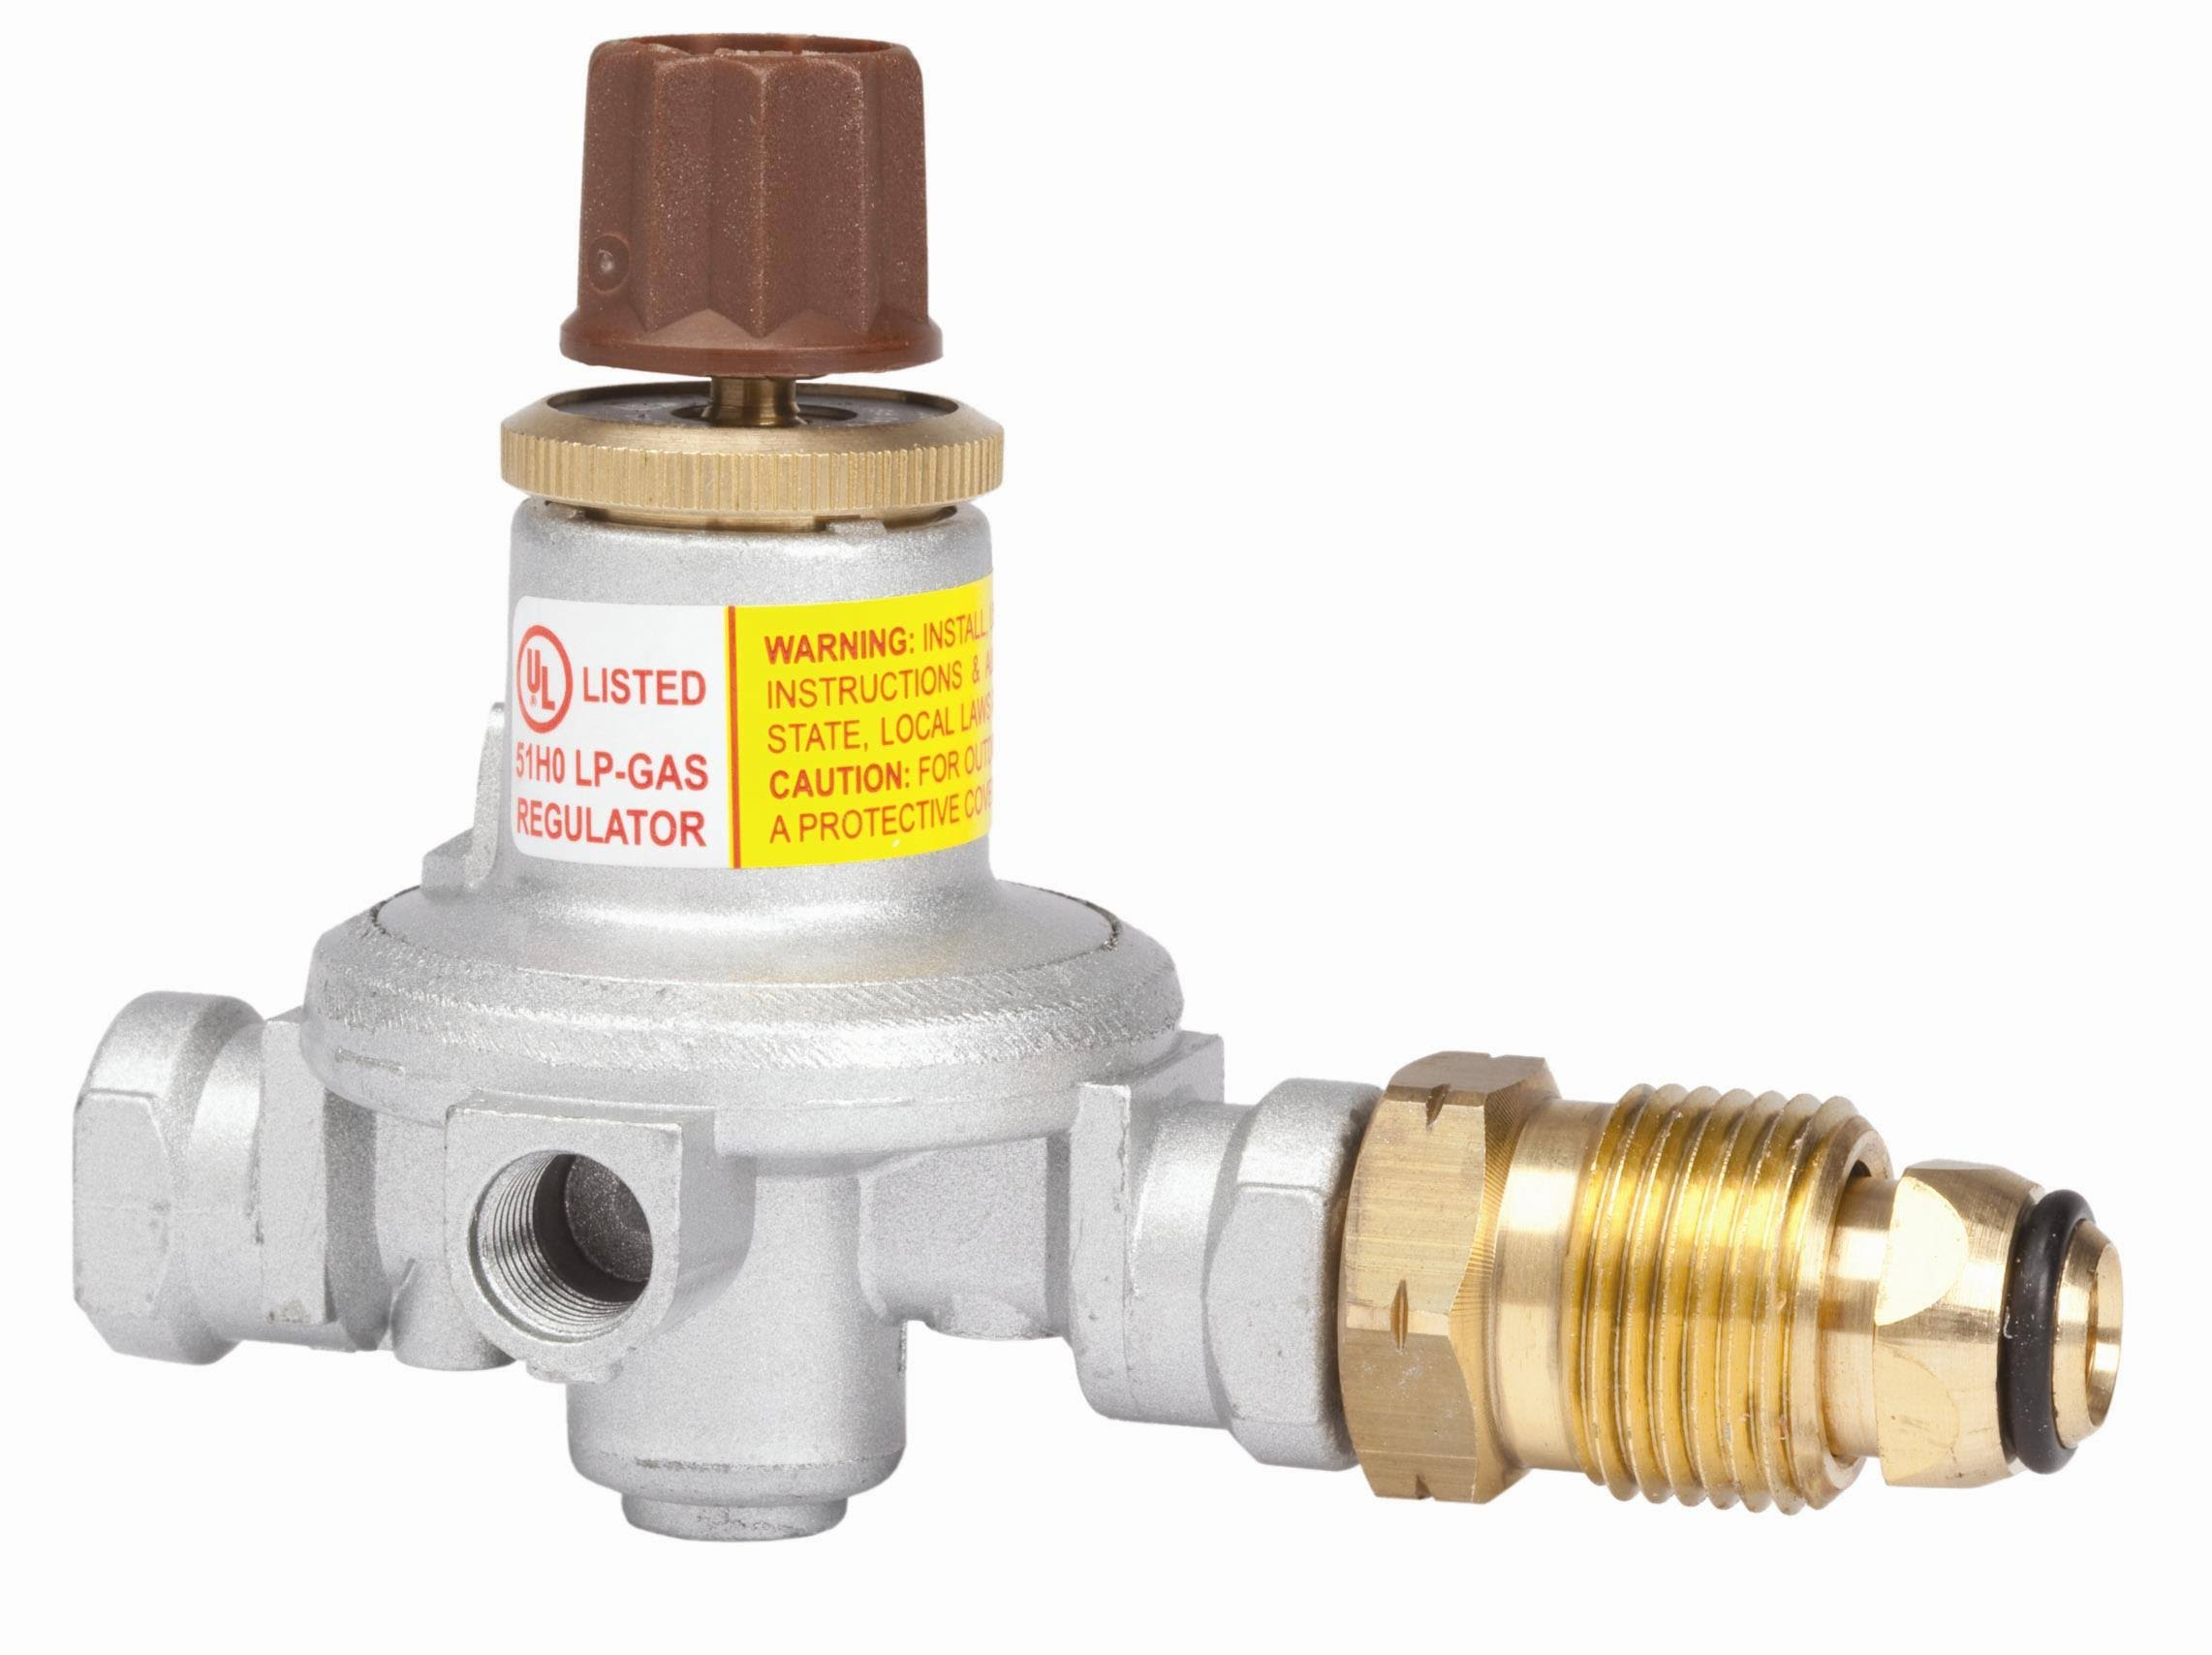 Mr. Heater High Pressure Propane Gas Regulator